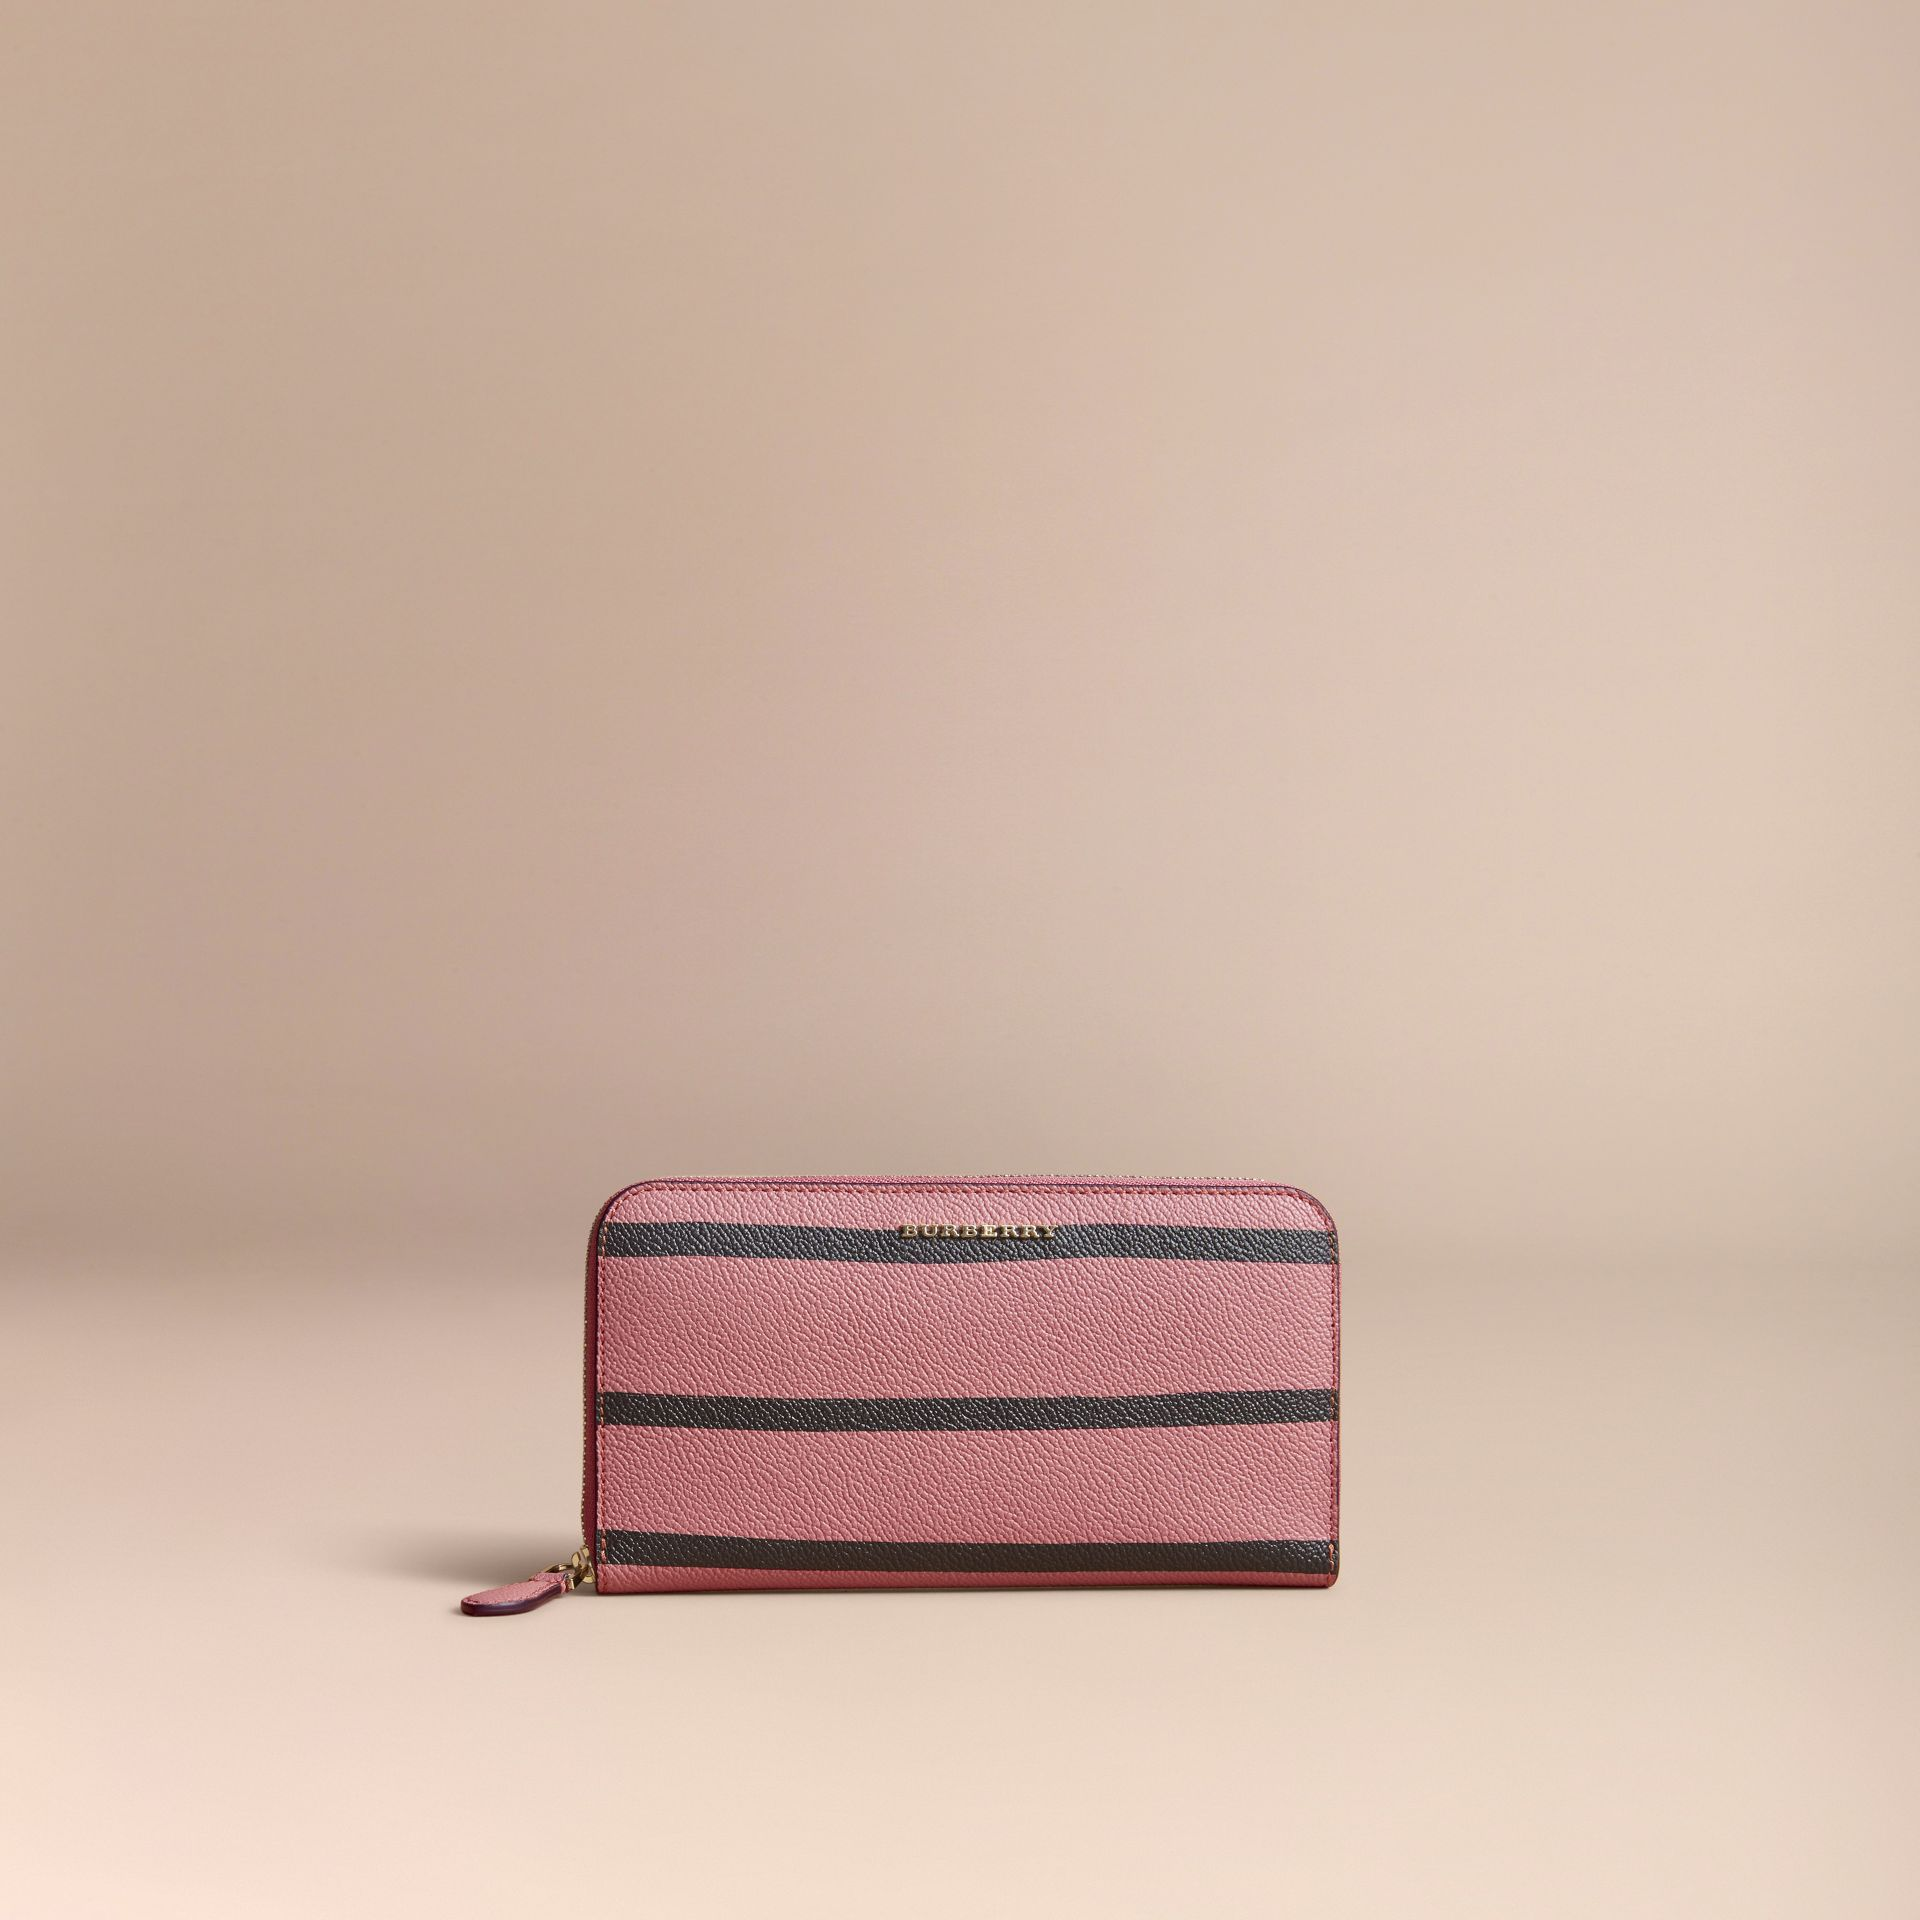 Trompe L'oeil Print Leather Ziparound Wallet in Dusty Pink - Women | Burberry - gallery image 10